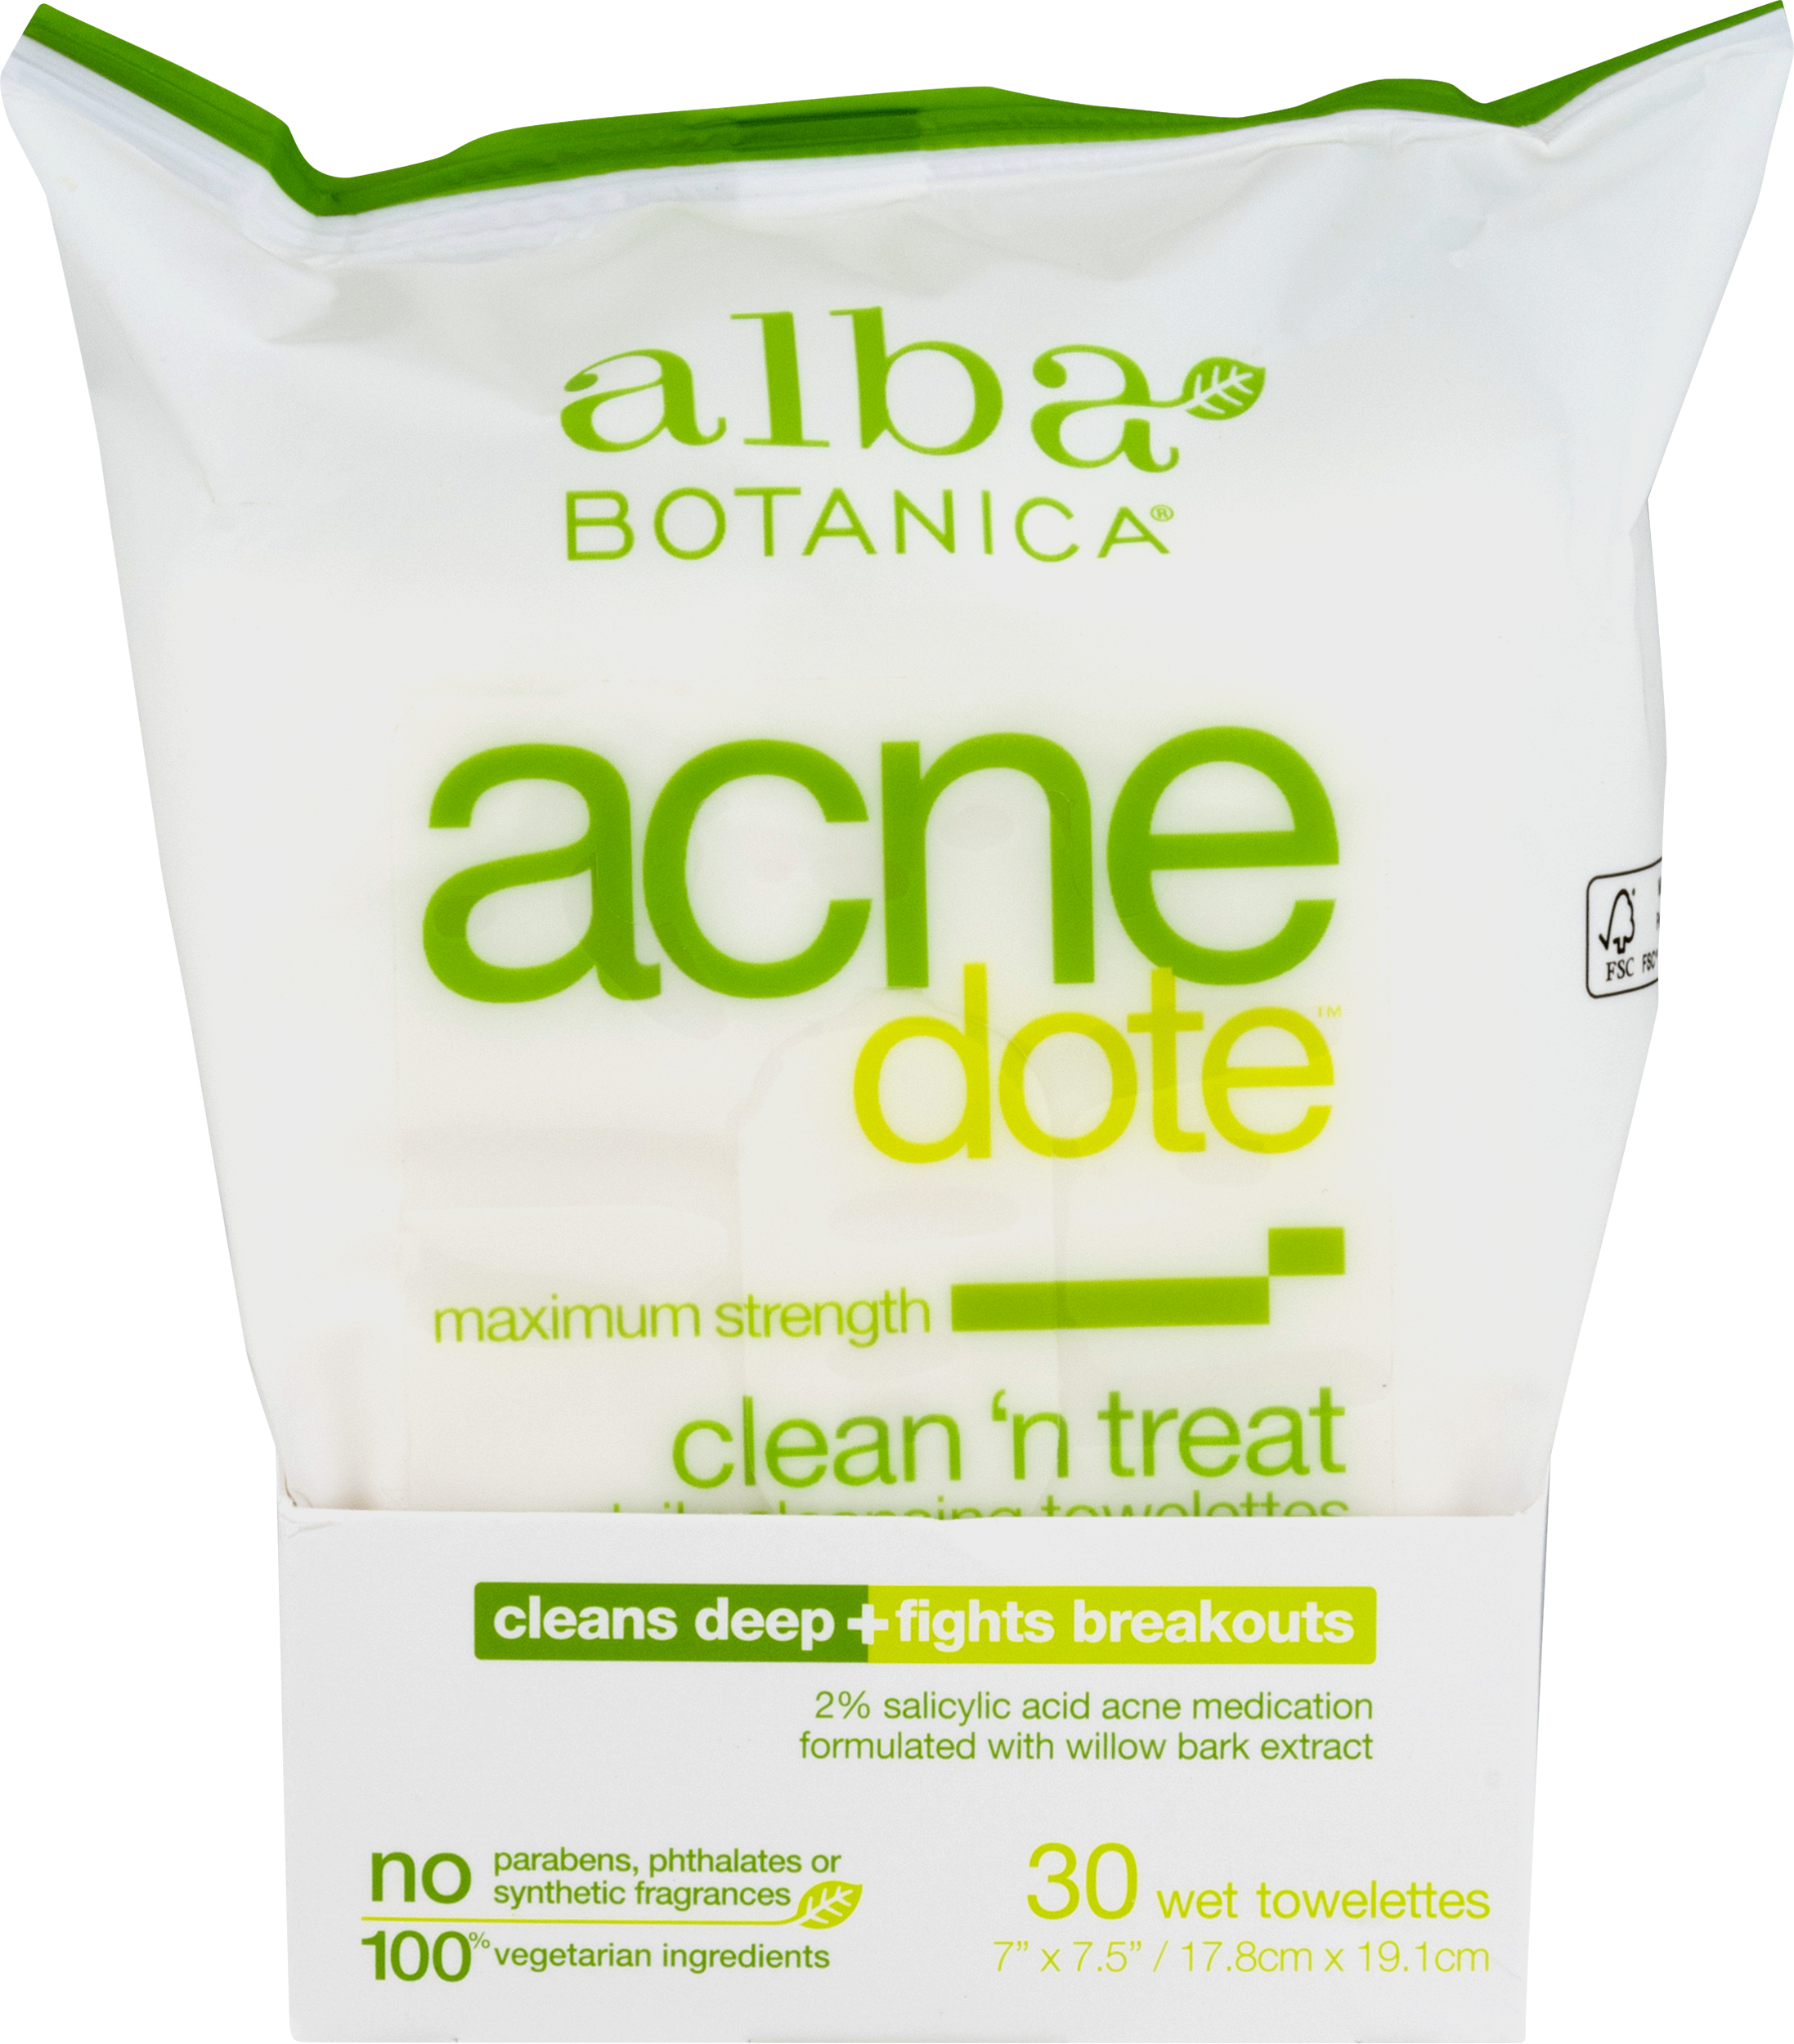 Alba Botanica - Natural ACNEdote Clean n Treat Towelettes - 30 Towelette(s) (pack of 4) GMC Medical Purifying Cleansing Gel 6.8oz